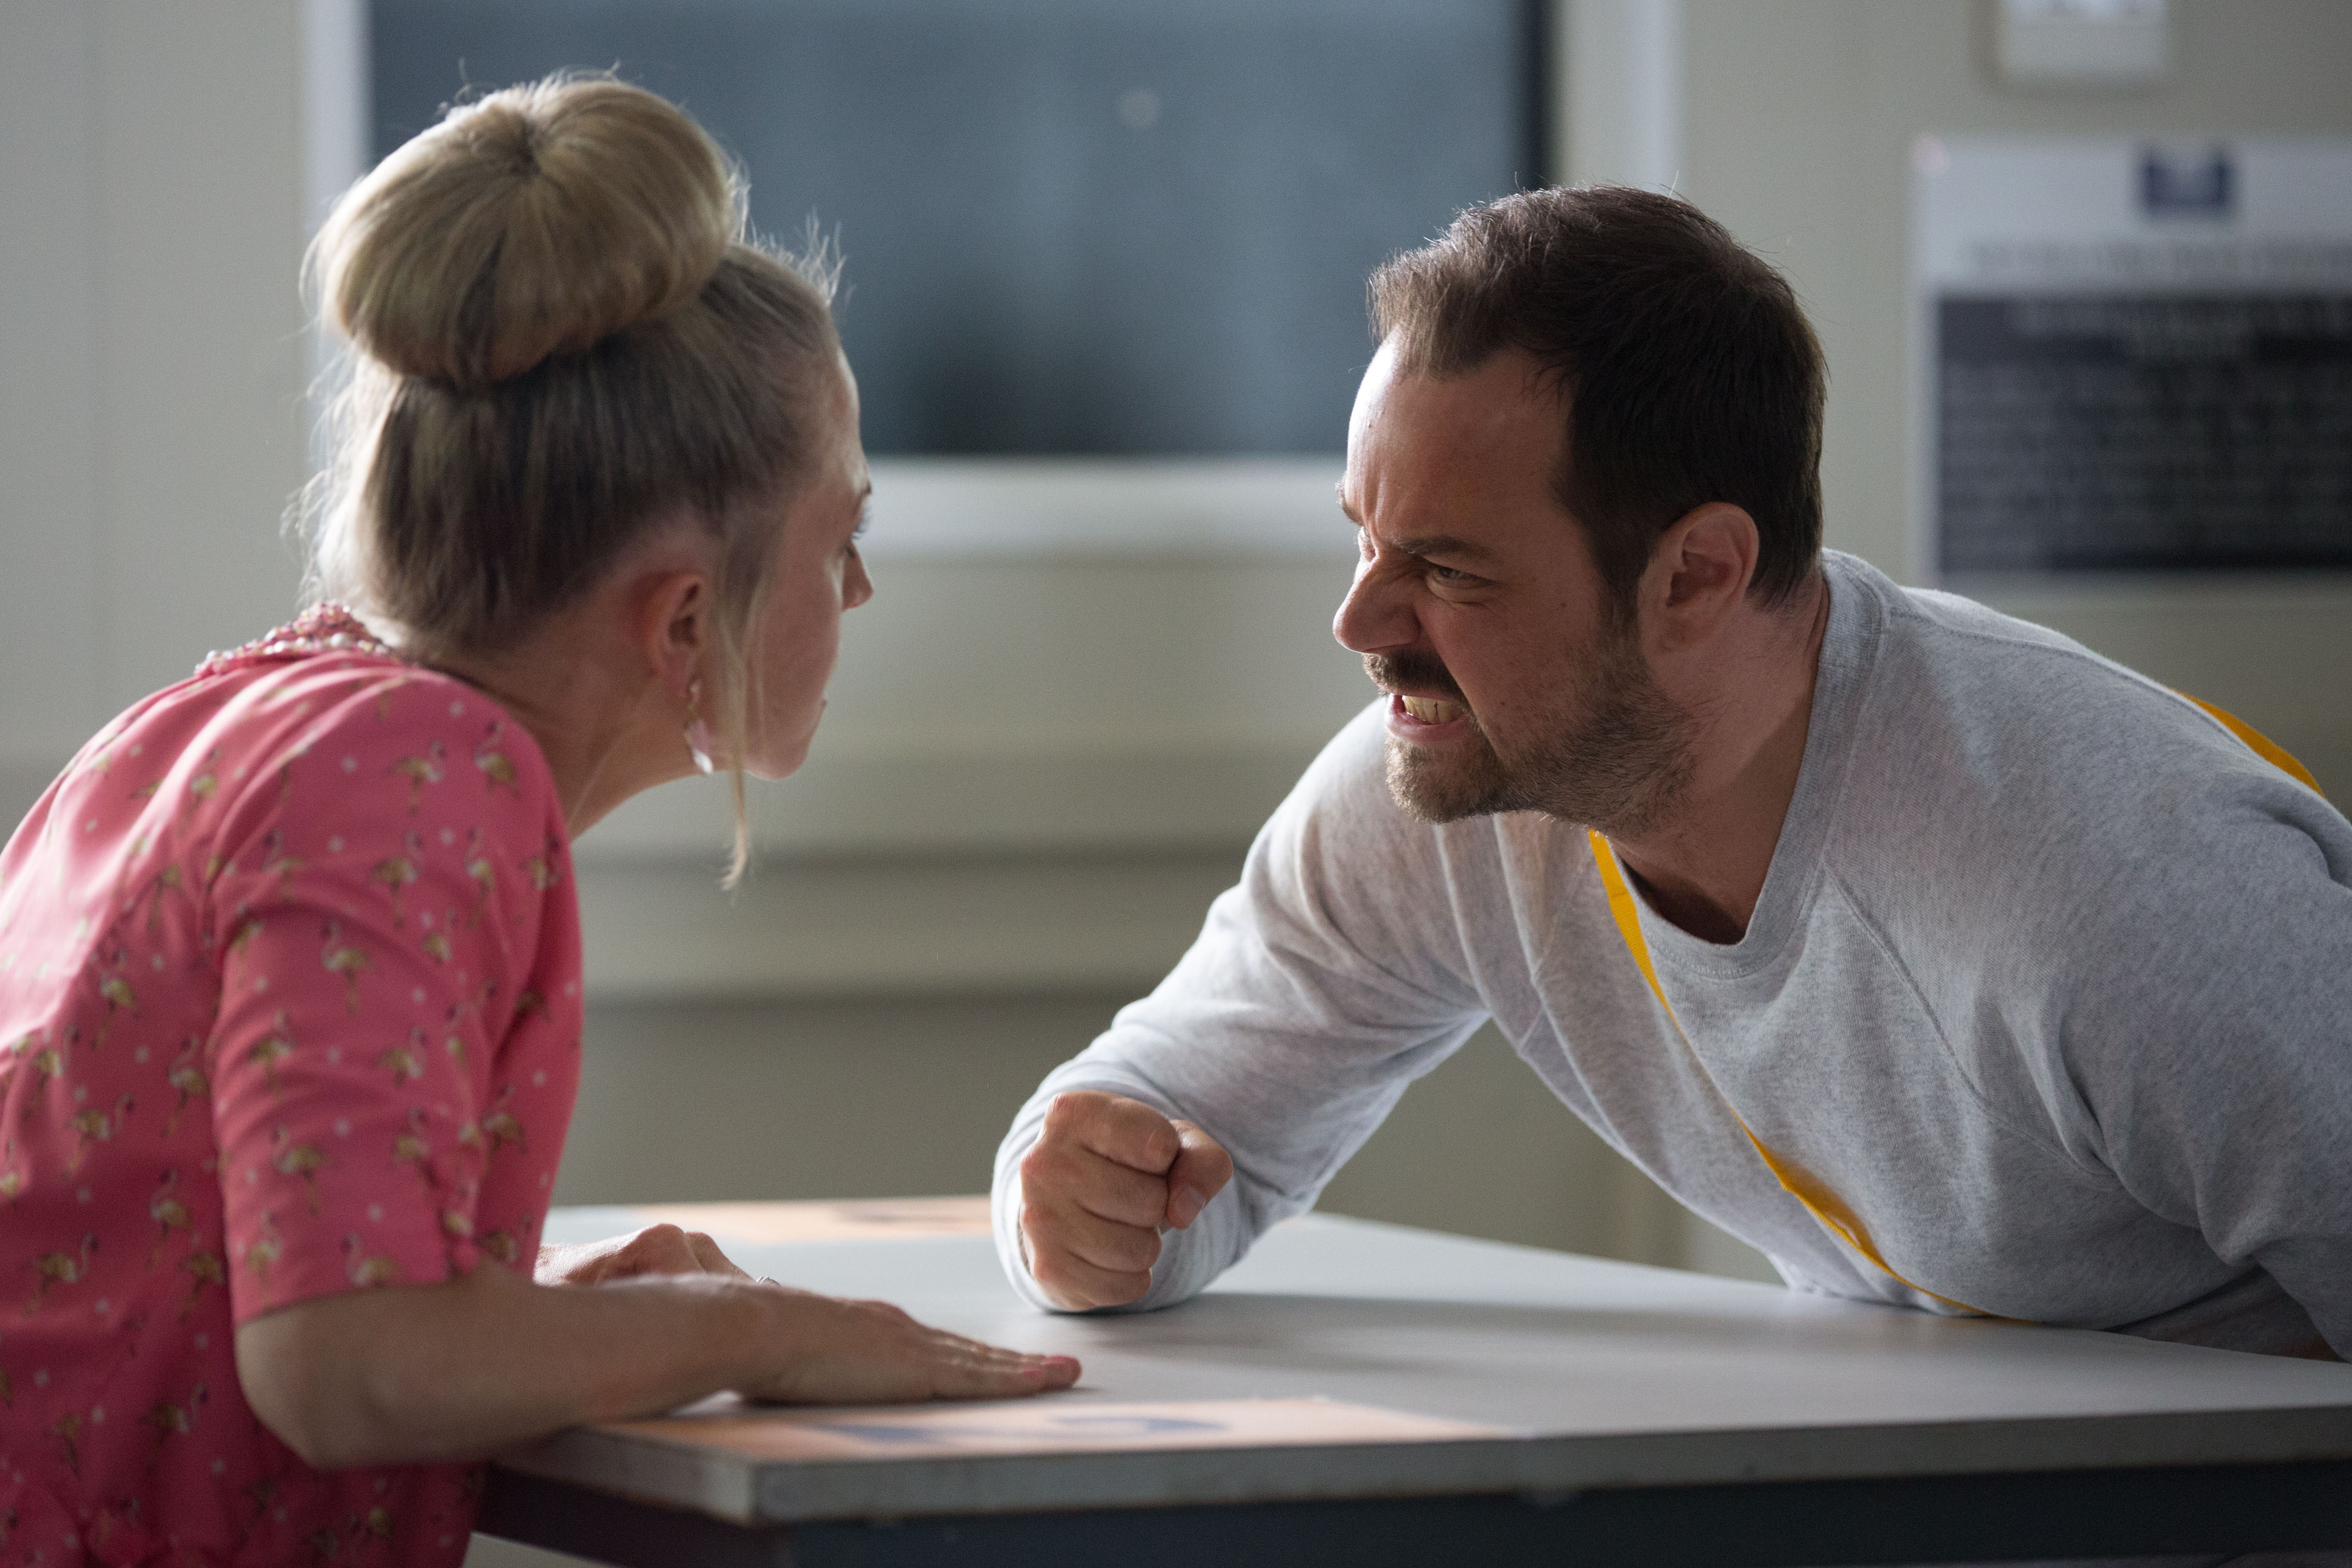 EastEnders spoilers: Linda Carter makes a shocking decision that destroys Mick